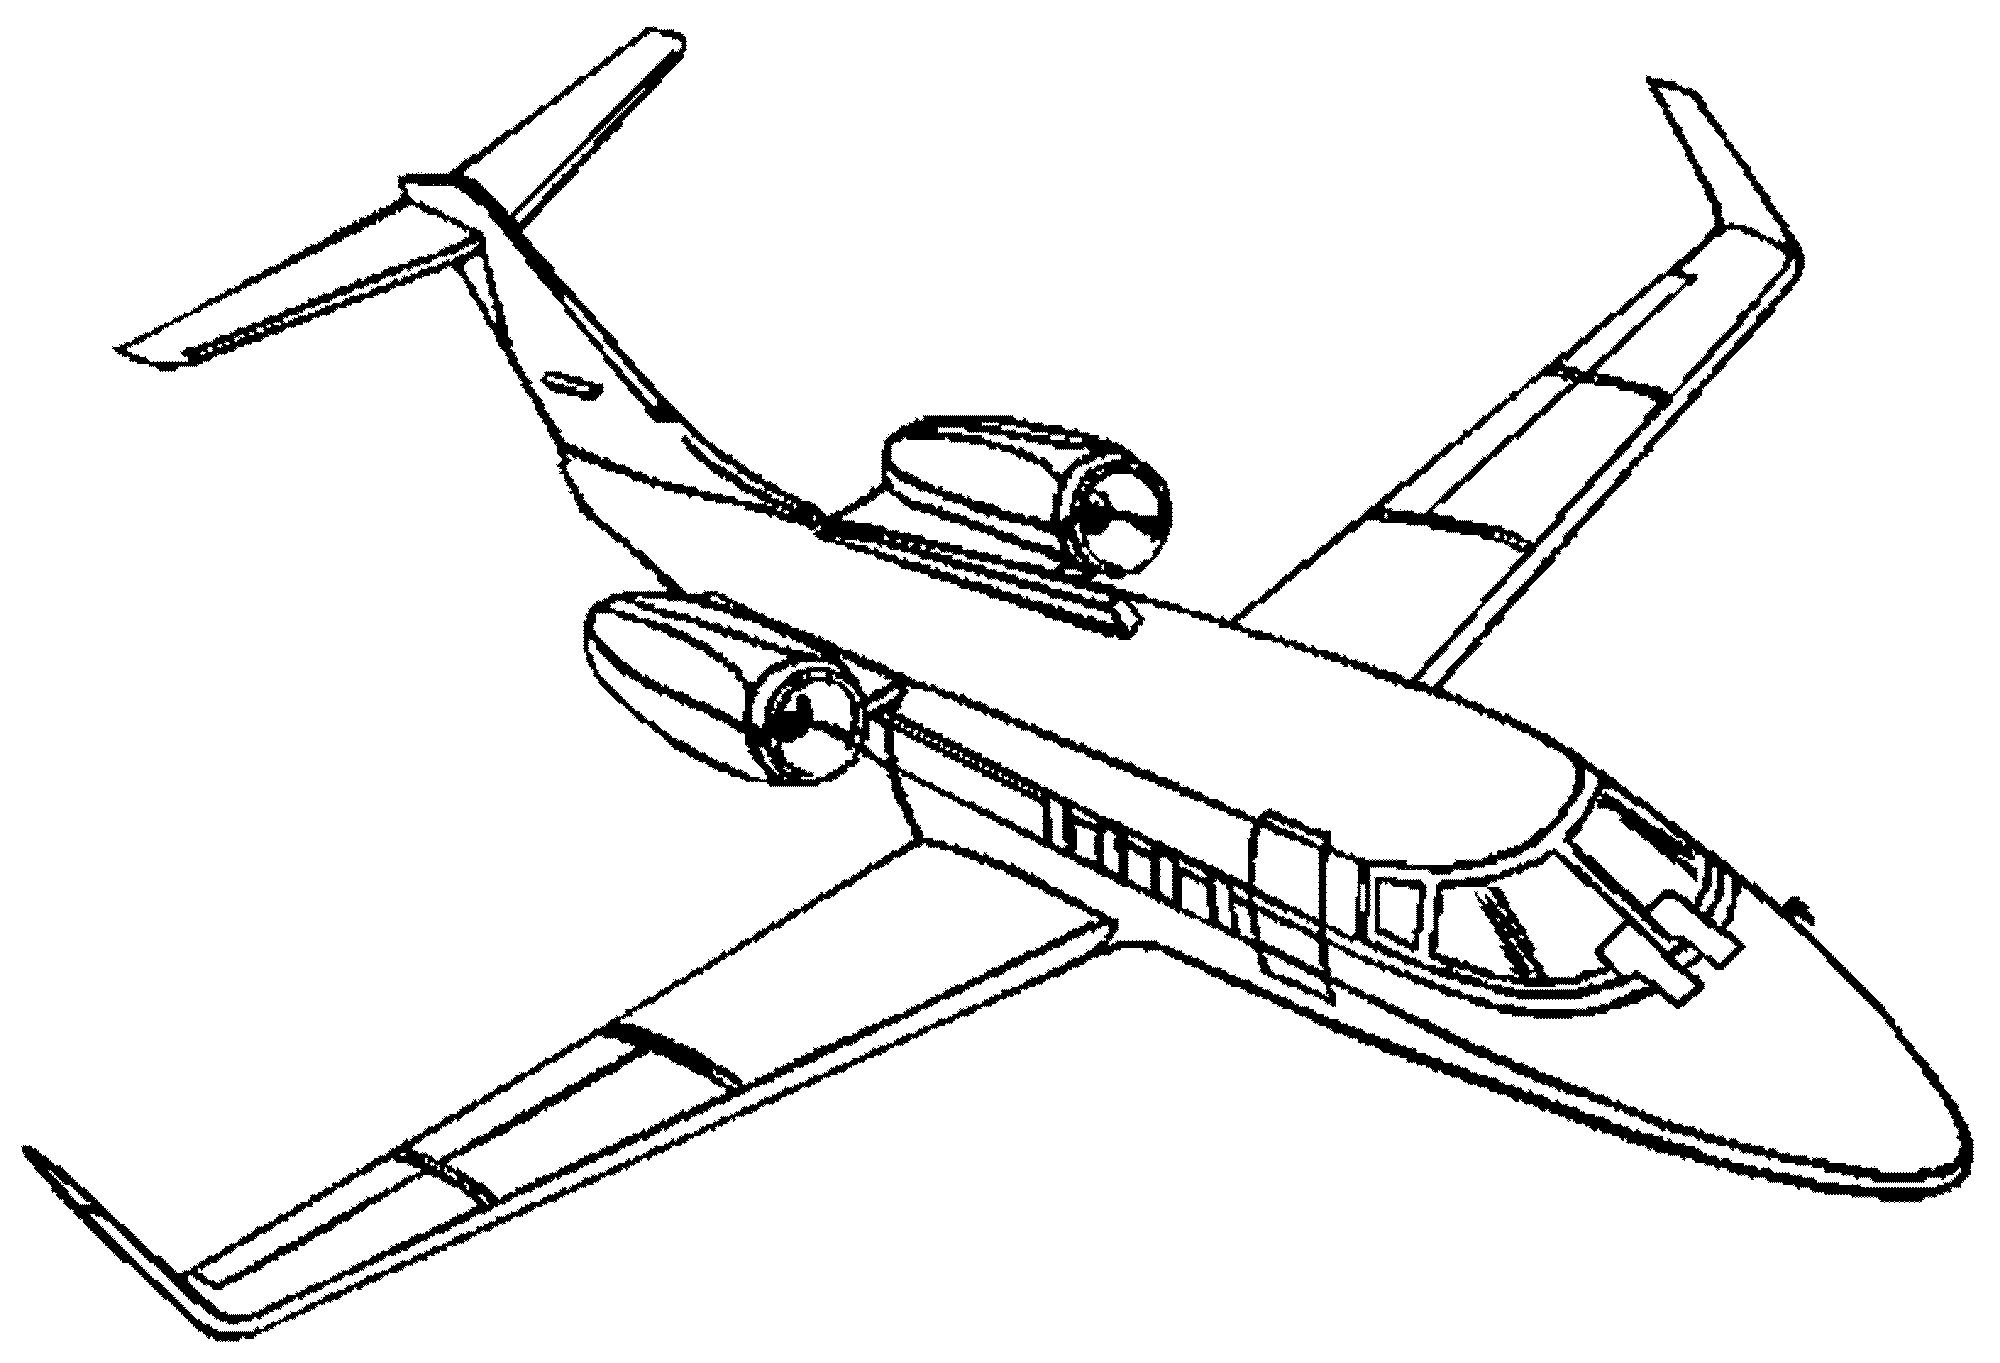 Top Jet Coloring Pages In 2021 Airplane Coloring Pages Online Coloring Pages Coloring Pages